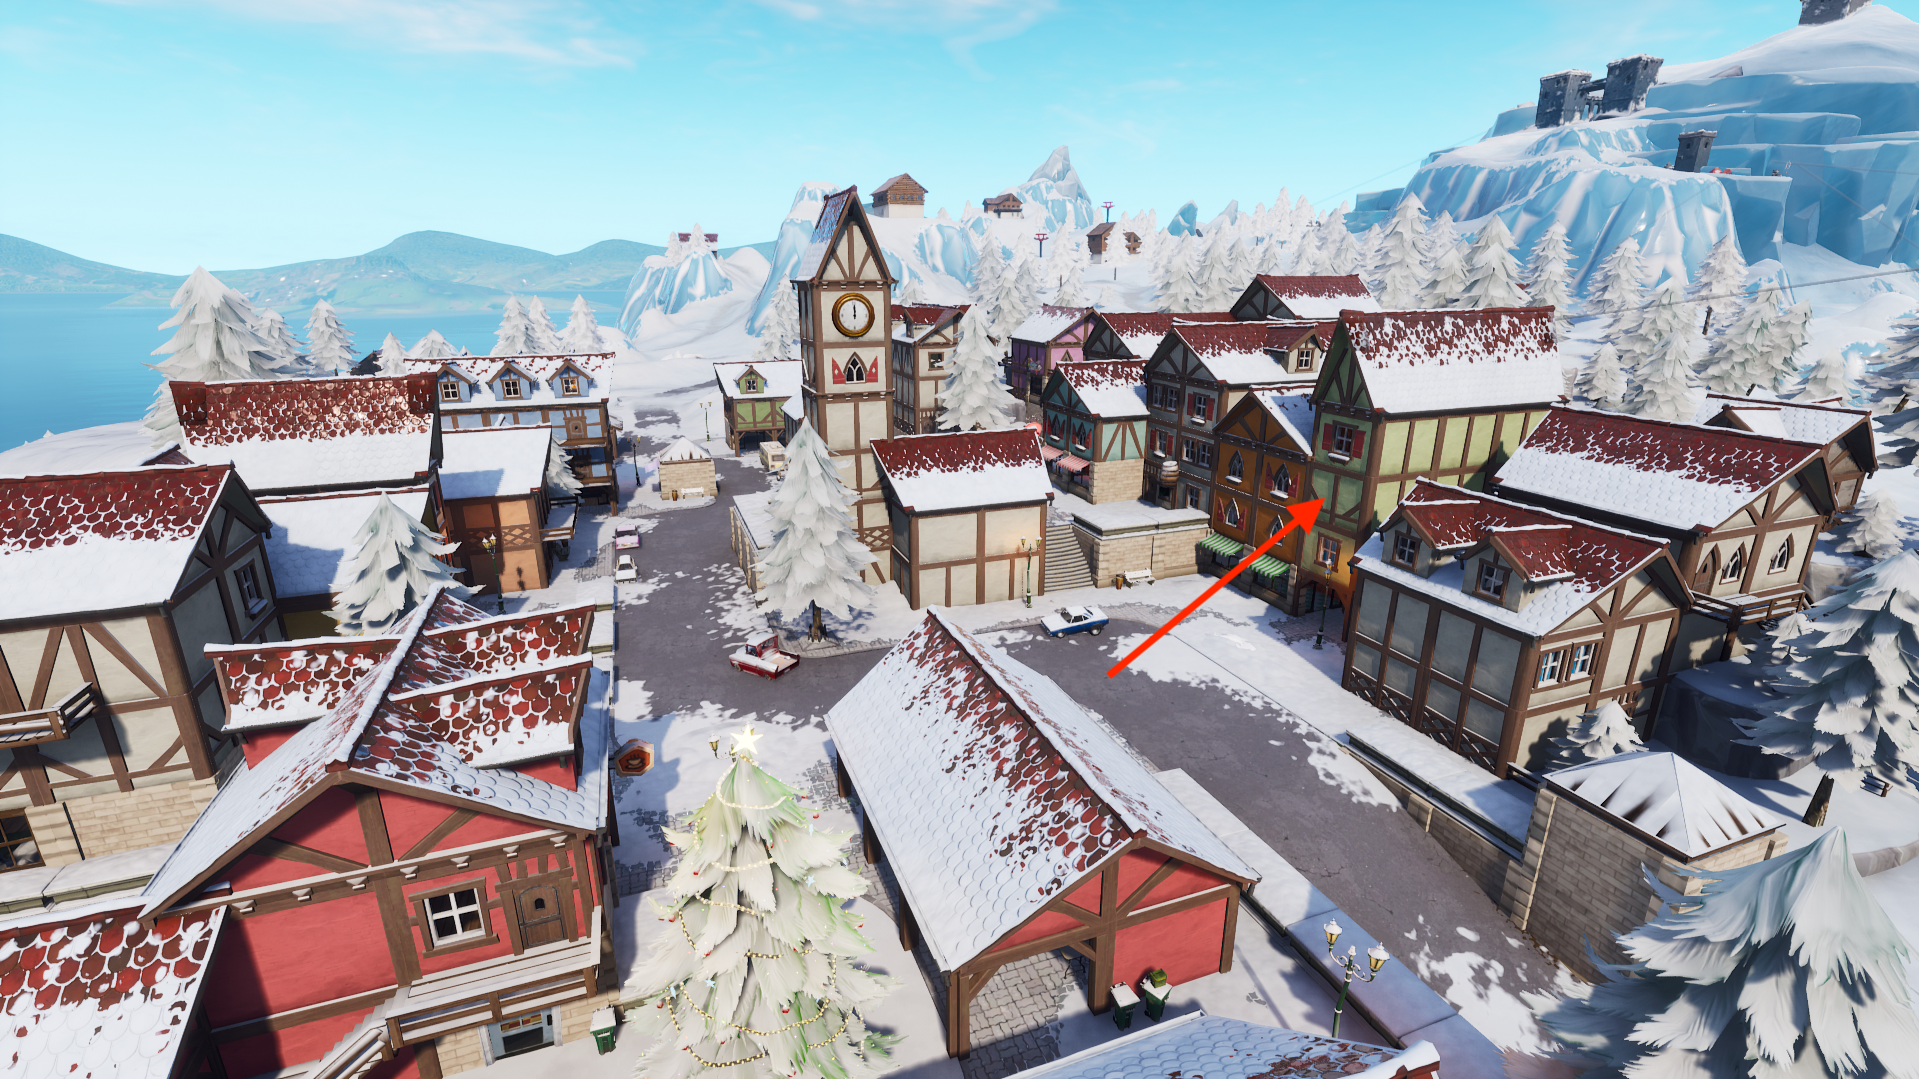 fortnite week 4 secret battle star location leads to a hidden banner inverse - fortnite background png snow